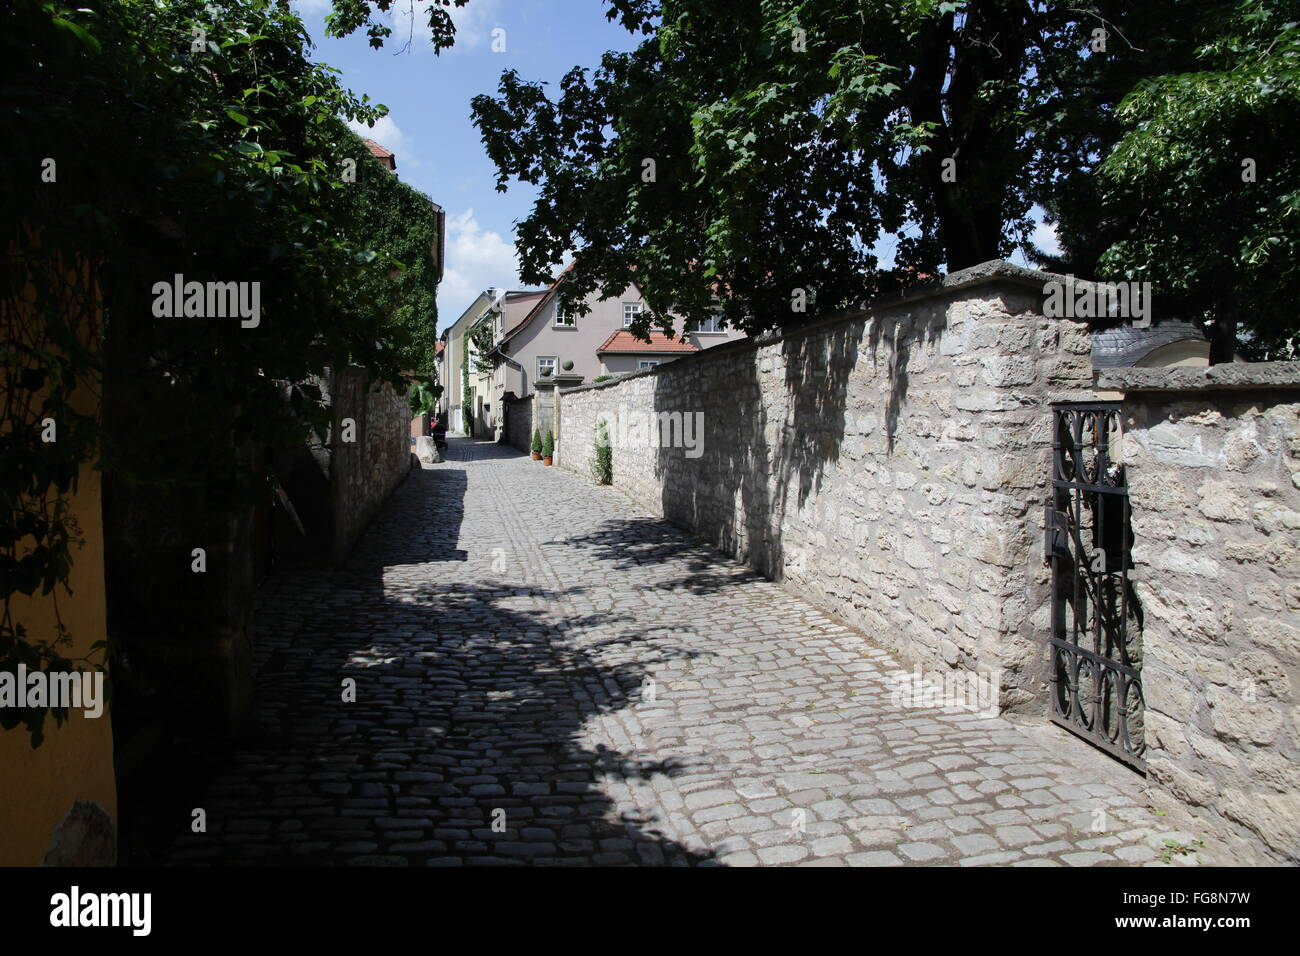 geography / travel, Germany, Thuringia, Weimar, Seifengasse, Additional-Rights-Clearance-Info-Not-Available - Stock Image